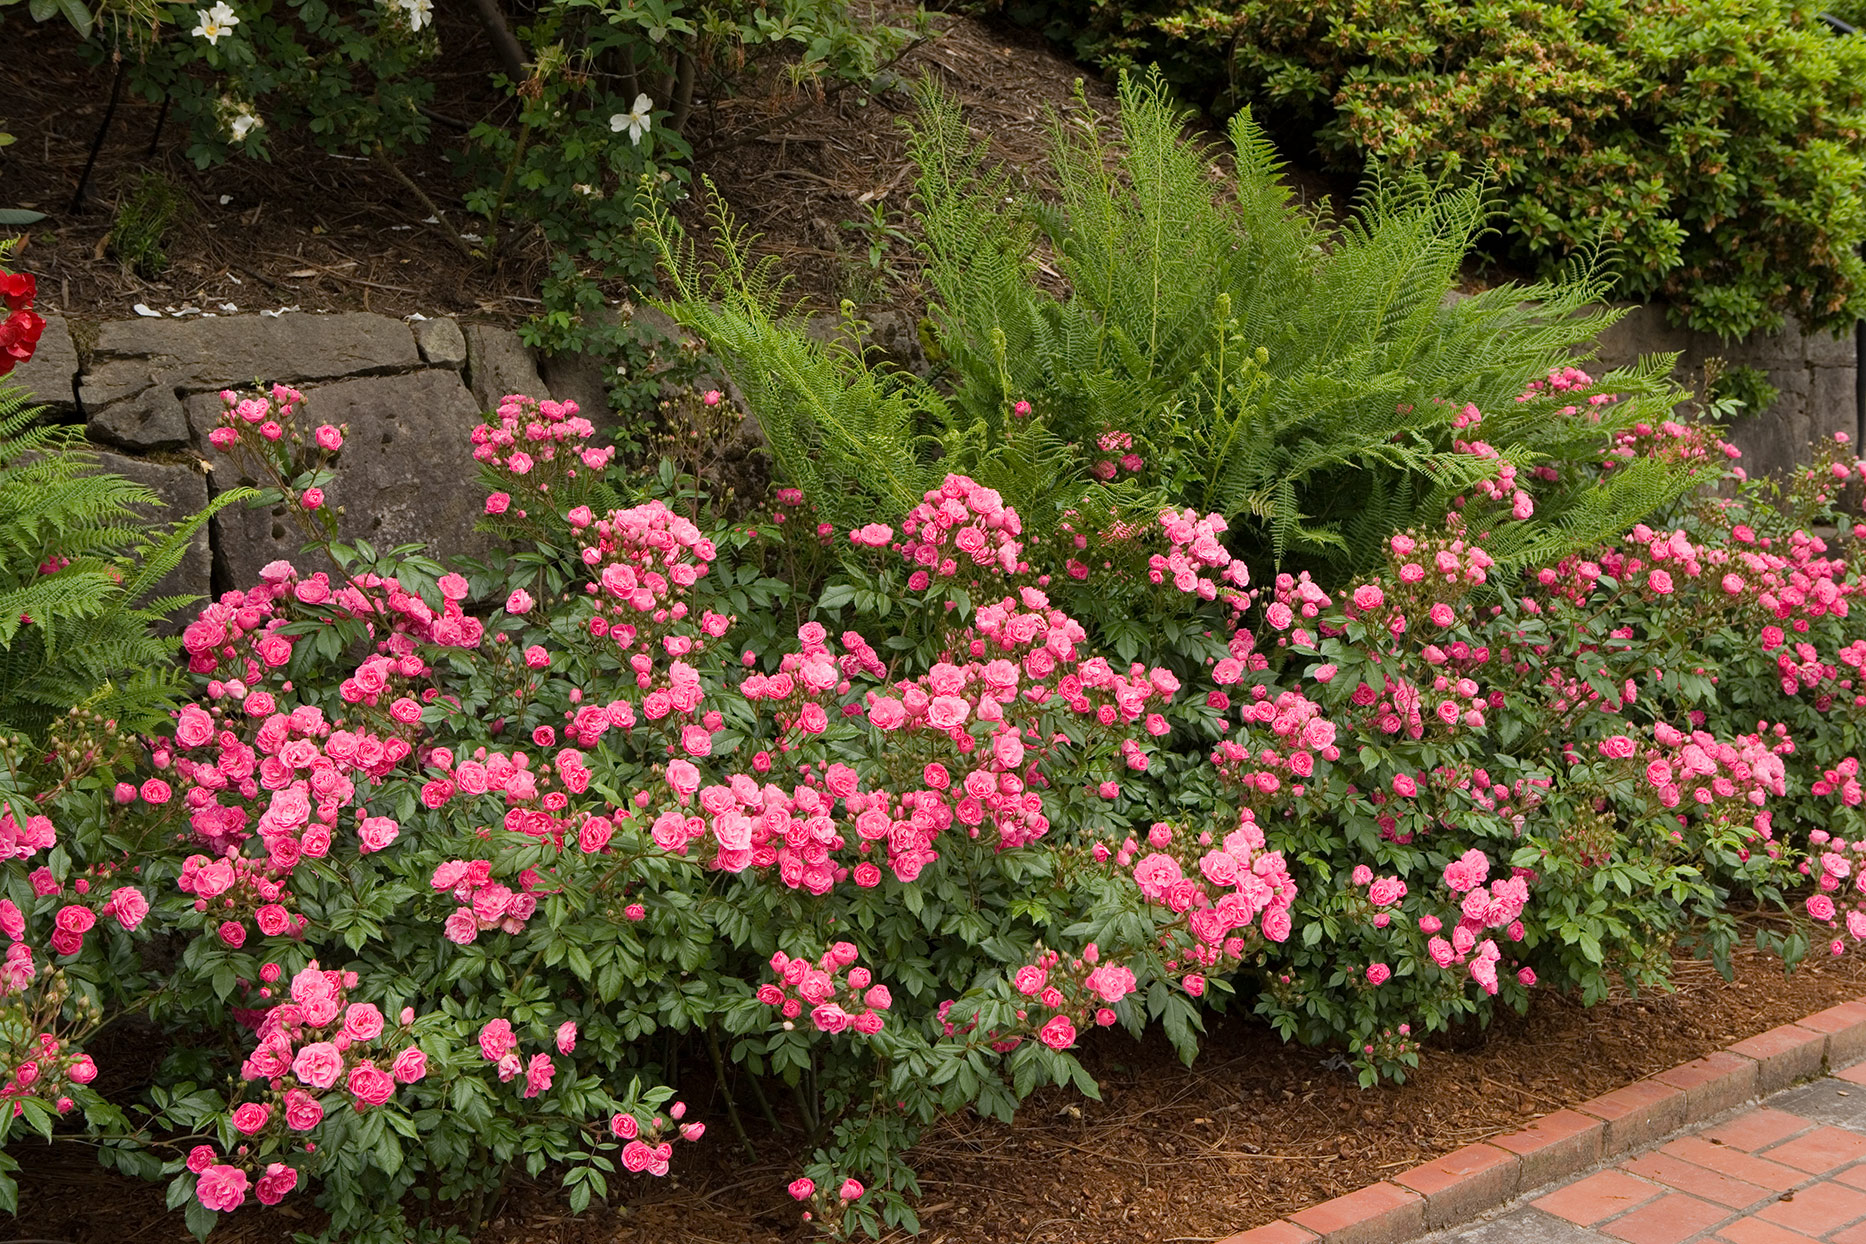 pink roses planted in garden bed